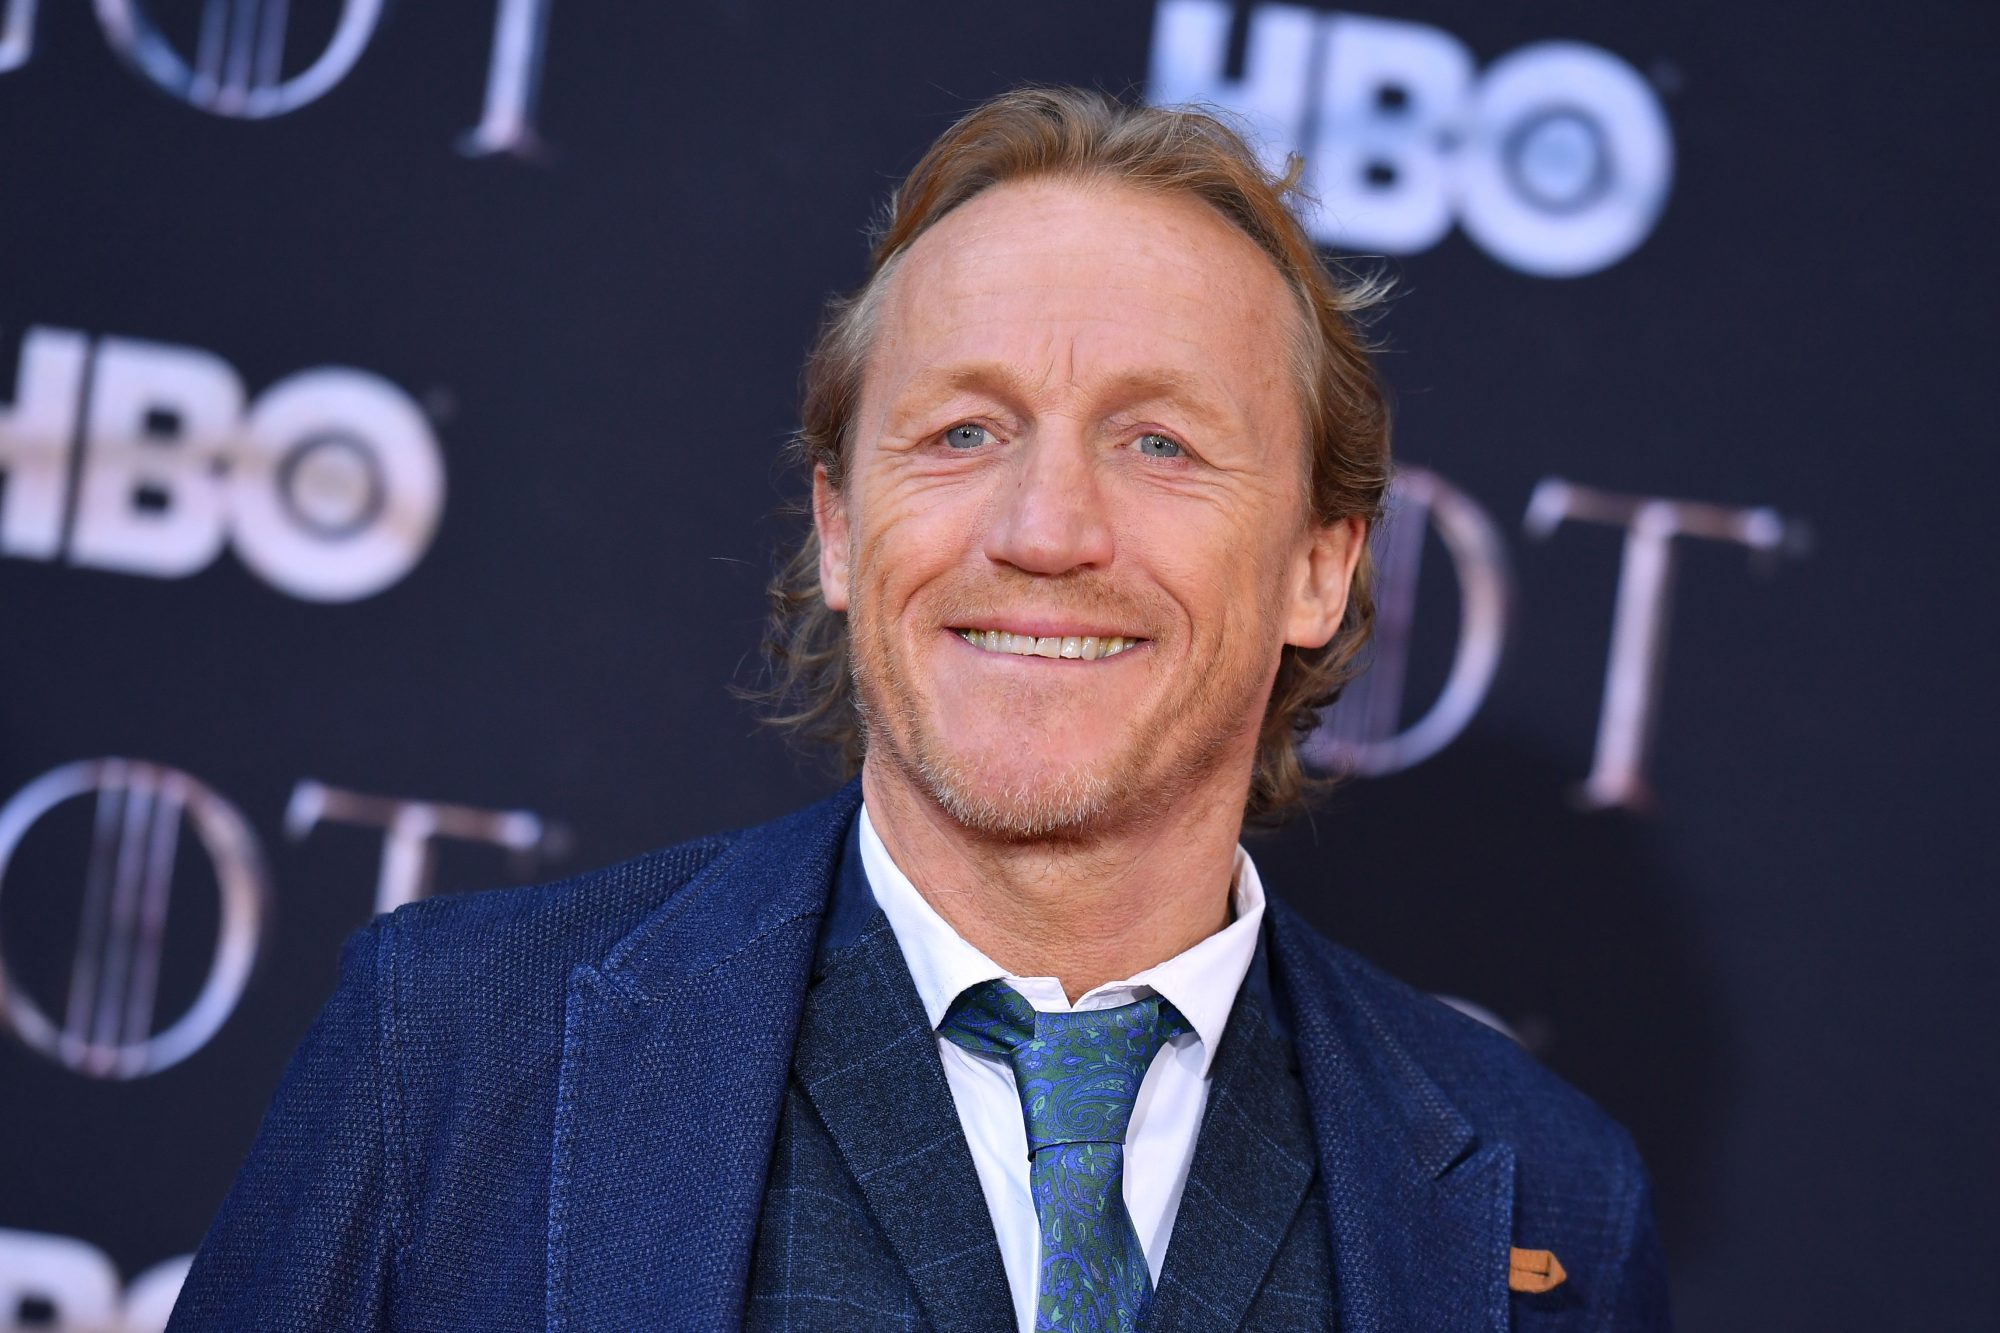 """Scottish actor Iain Glen arrives for the """"Game of Thrones"""" eighth and final season premiere at Radio City Music Hall on April 3, 2019 in New York city. (Photo by Angela Weiss / AFP)        (Photo credit should read ANGELA WEISS/AFP/Getty Images)"""